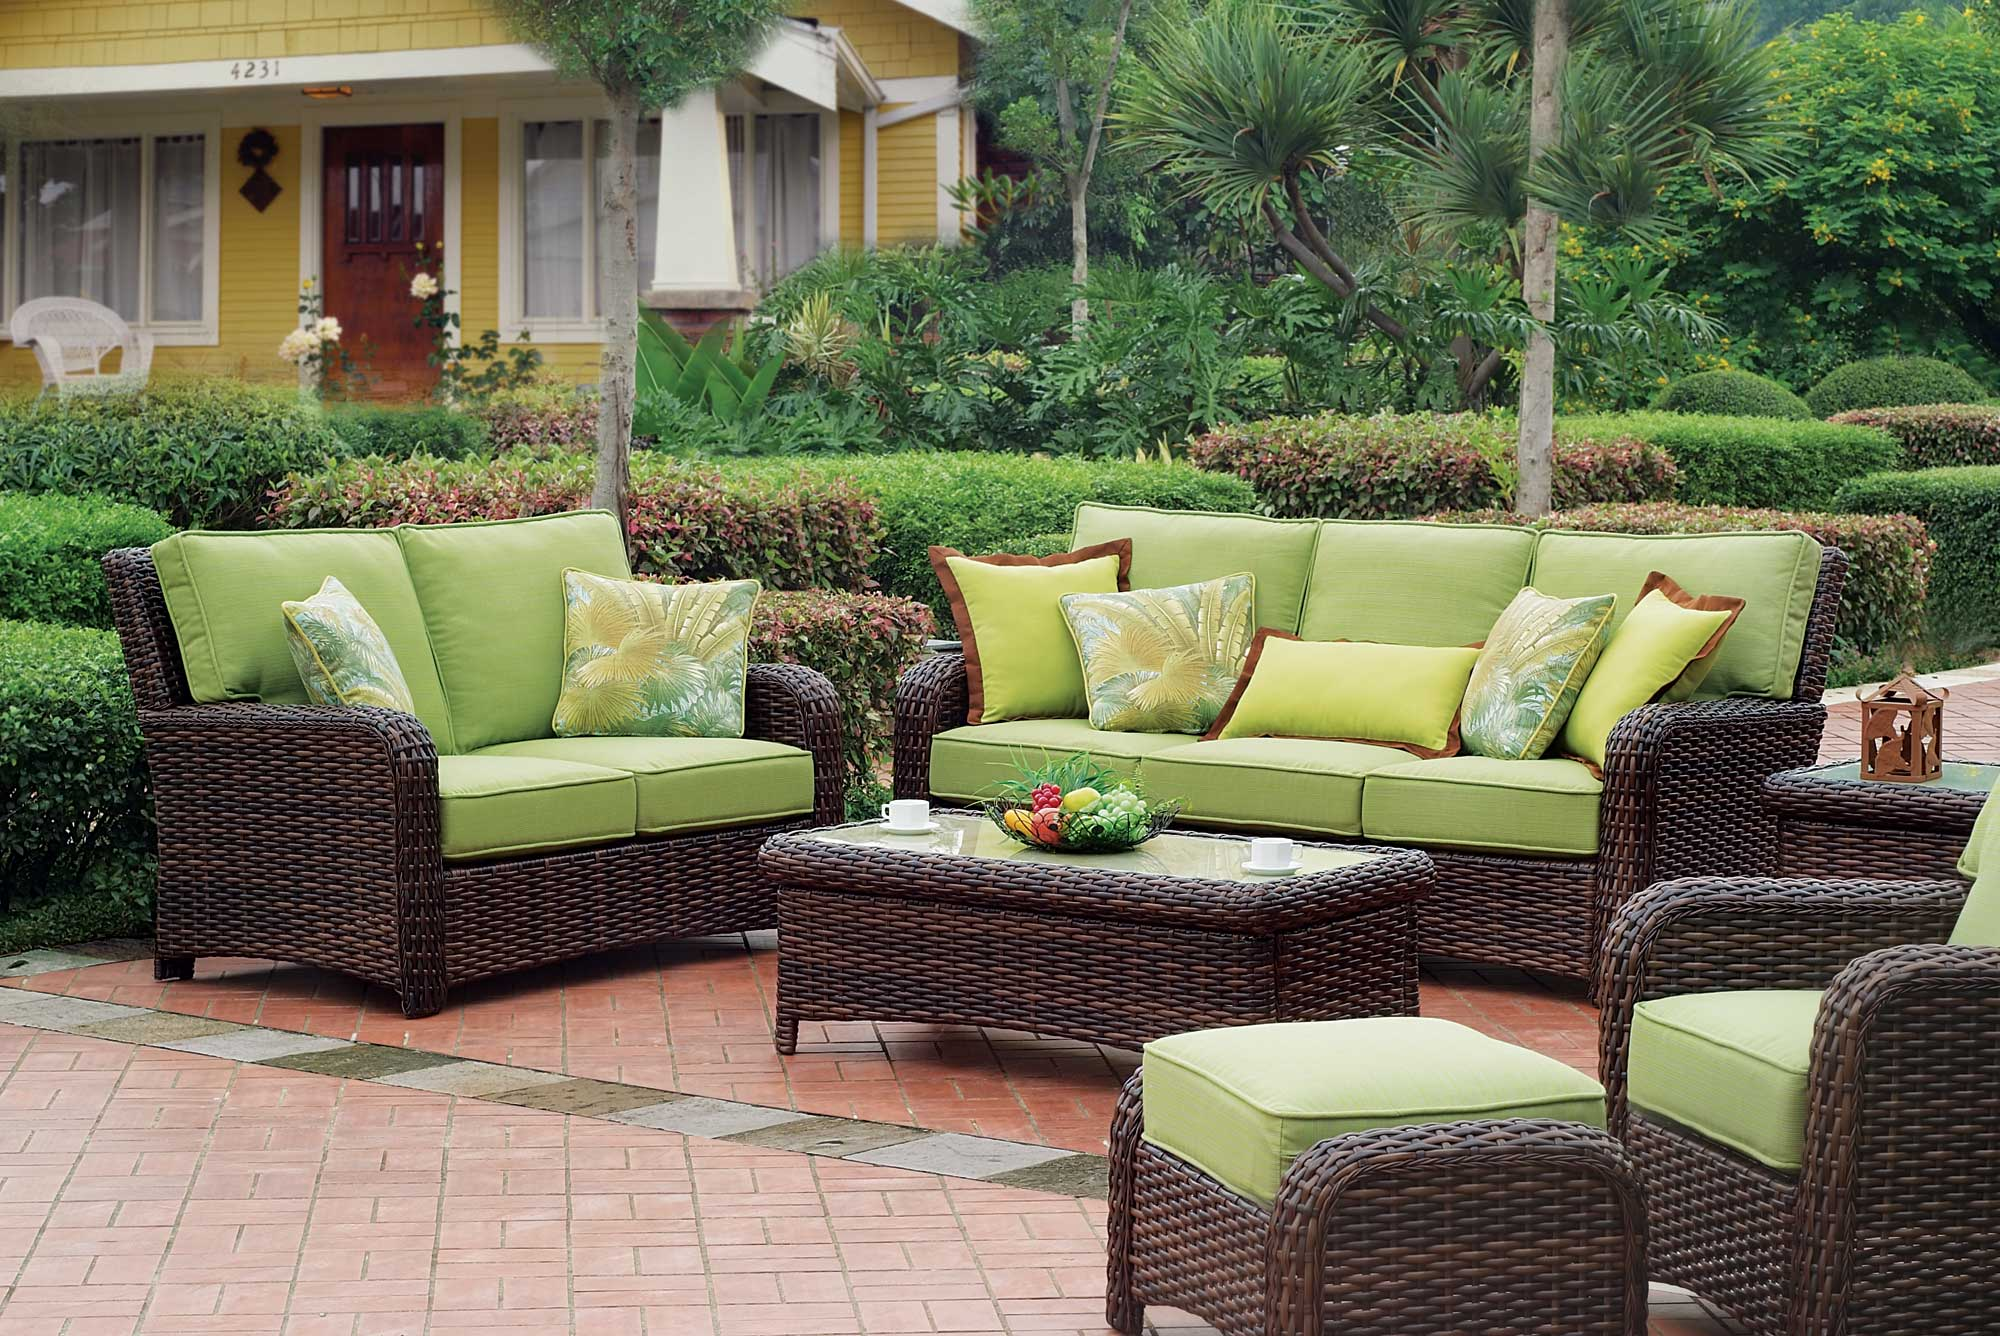 cane outdoor furniture outdoor wicker furniture clearance outdoor wicker  patio furniture